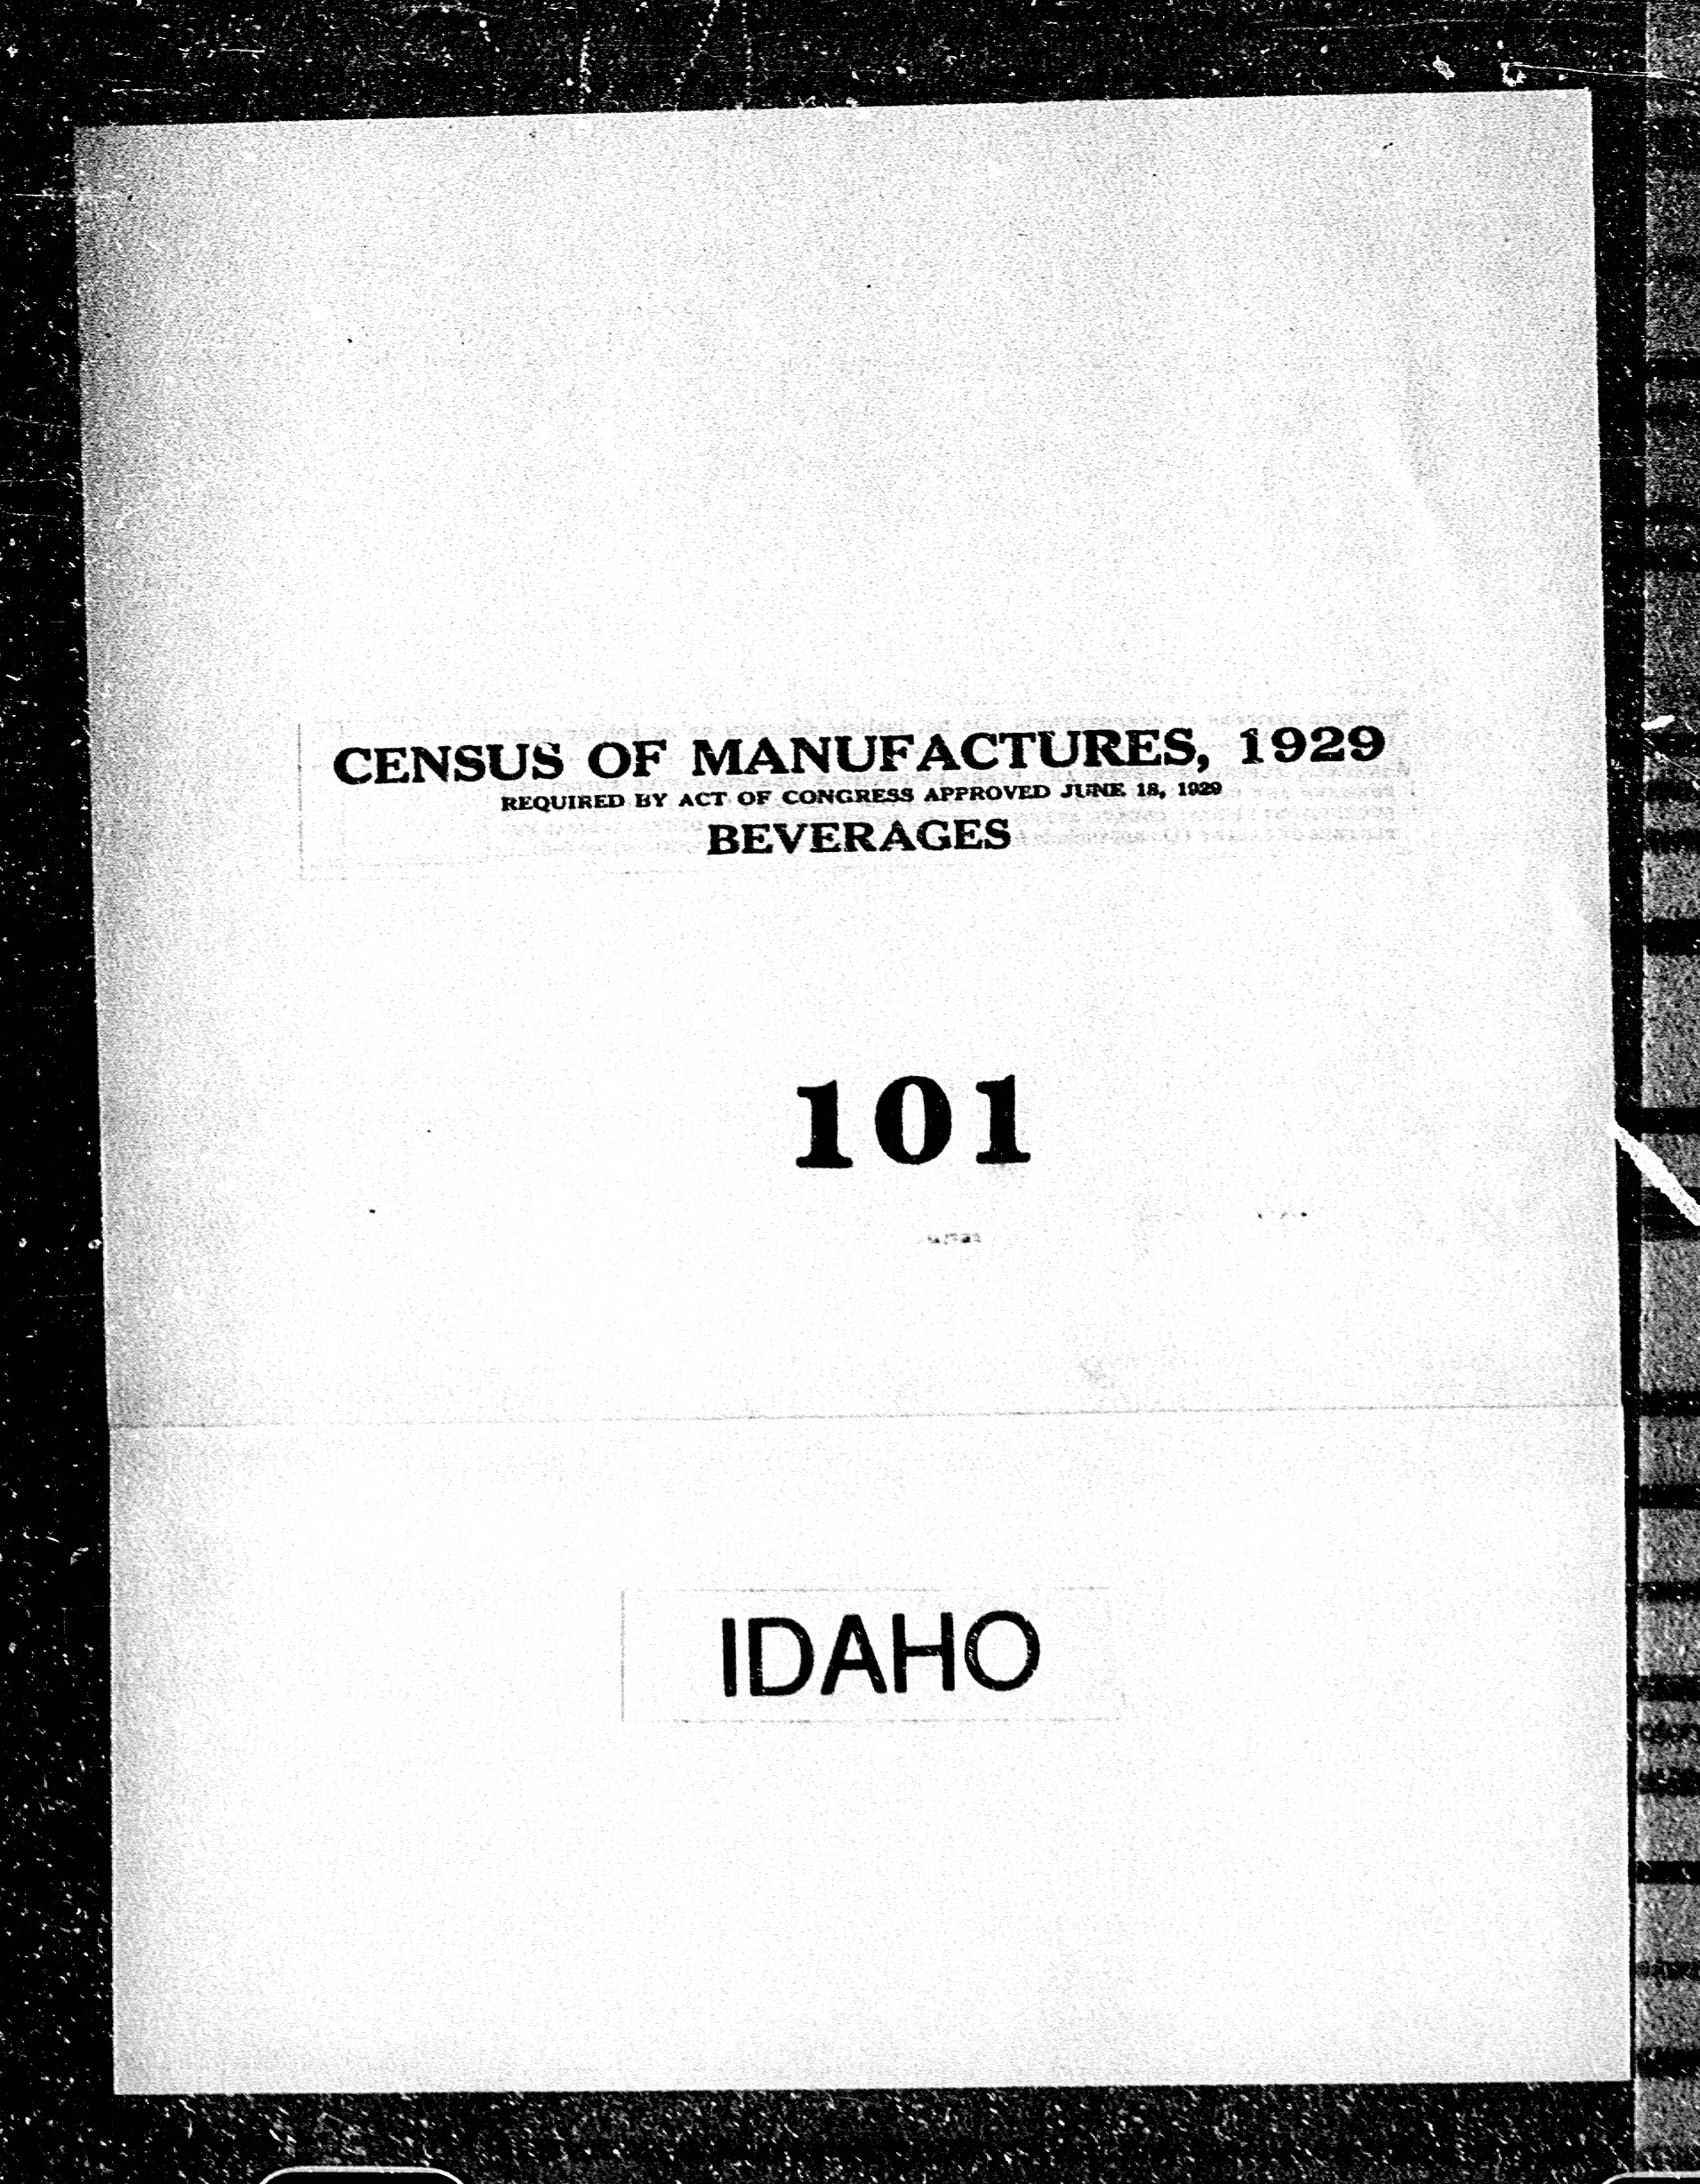 Idaho: Industry No. 101 - Beverages